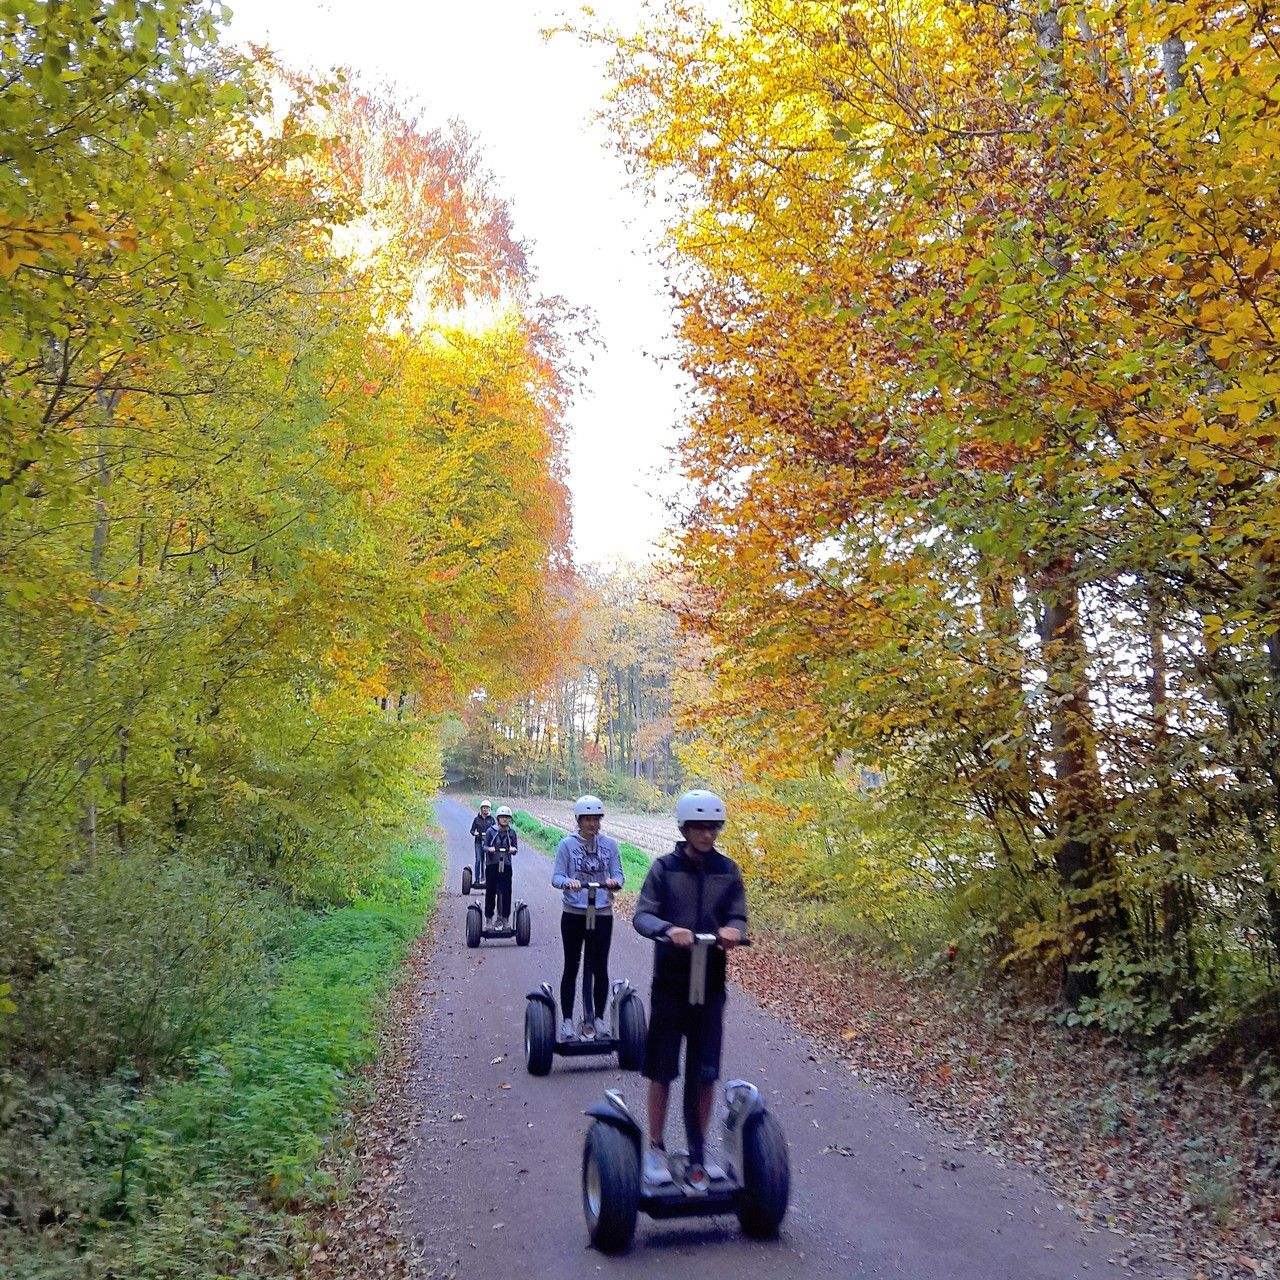 FUN MOVING GYROPODE SEGWAY EN ALSACE - Sundgau